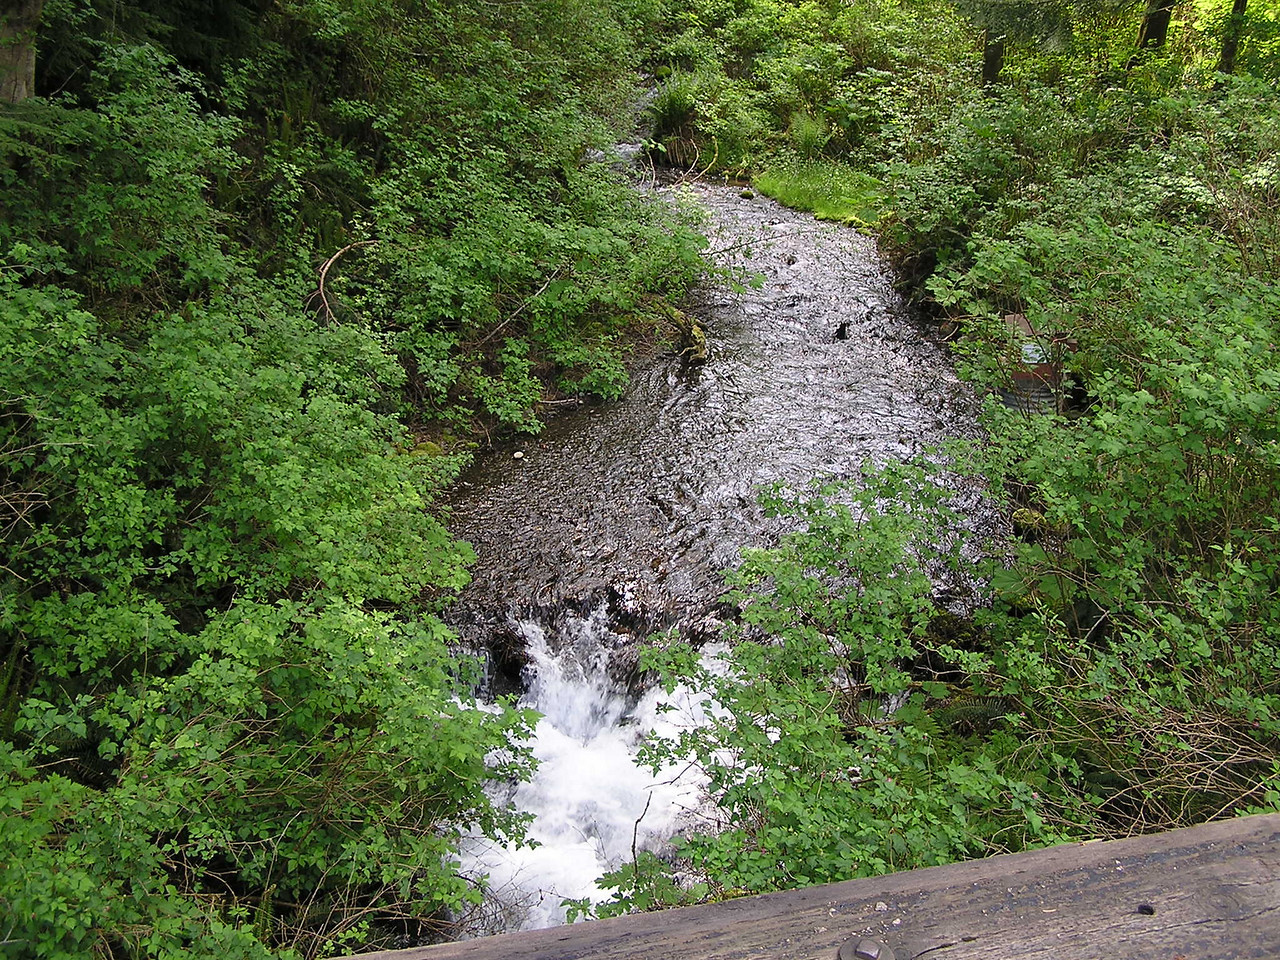 Boxley Creek looking upstream from the bridge.